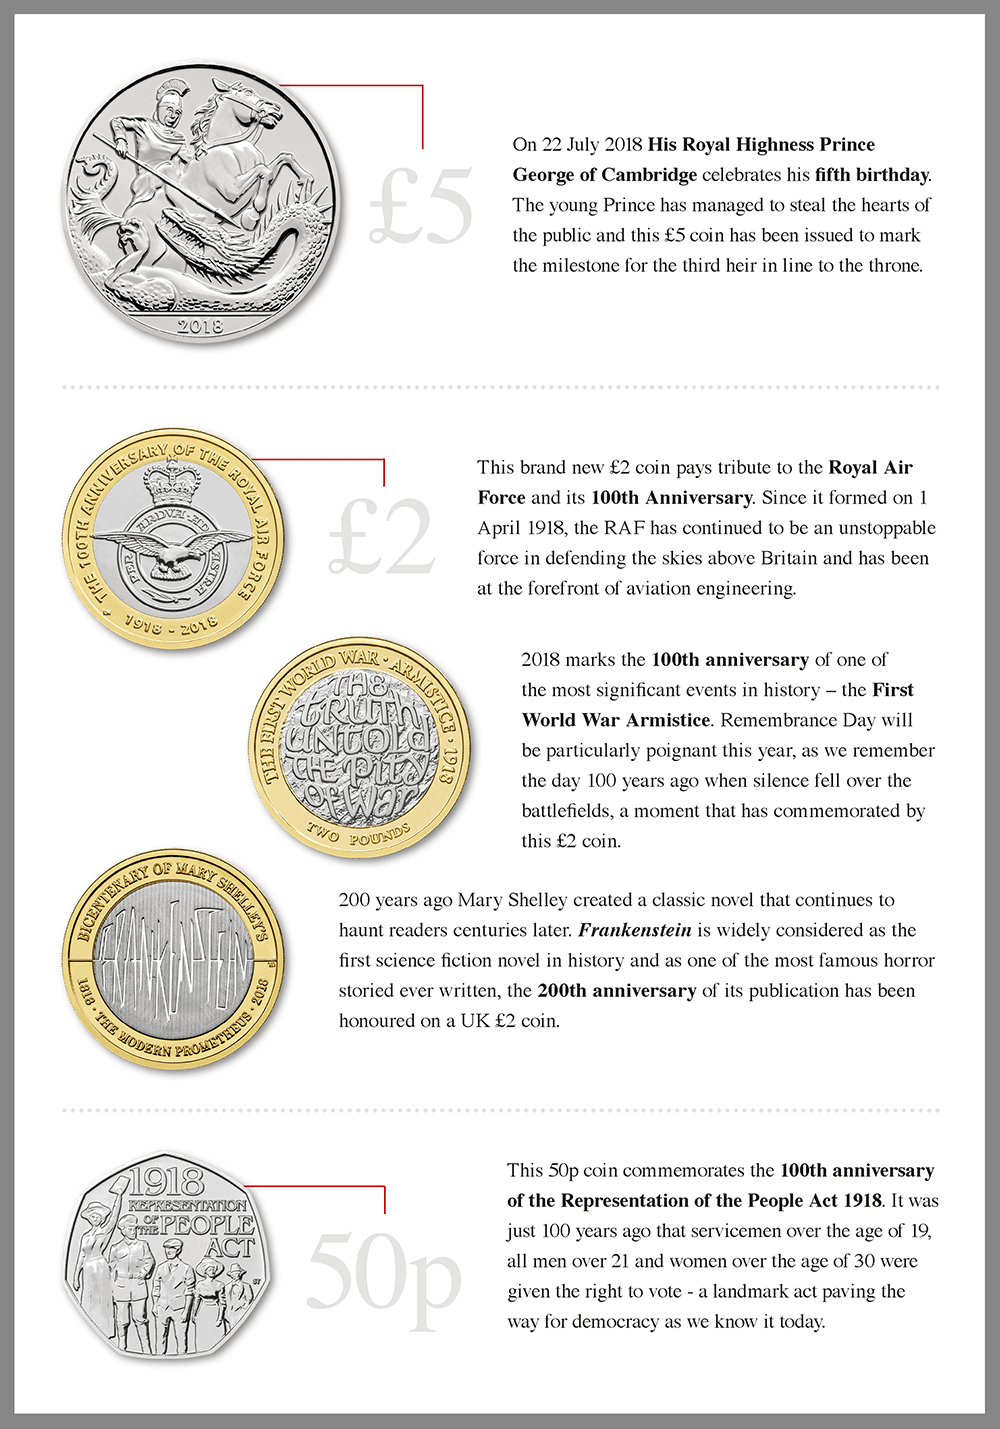 2018 Coins blog image 2 - Unveiled today: The UK's 2018 coin designs